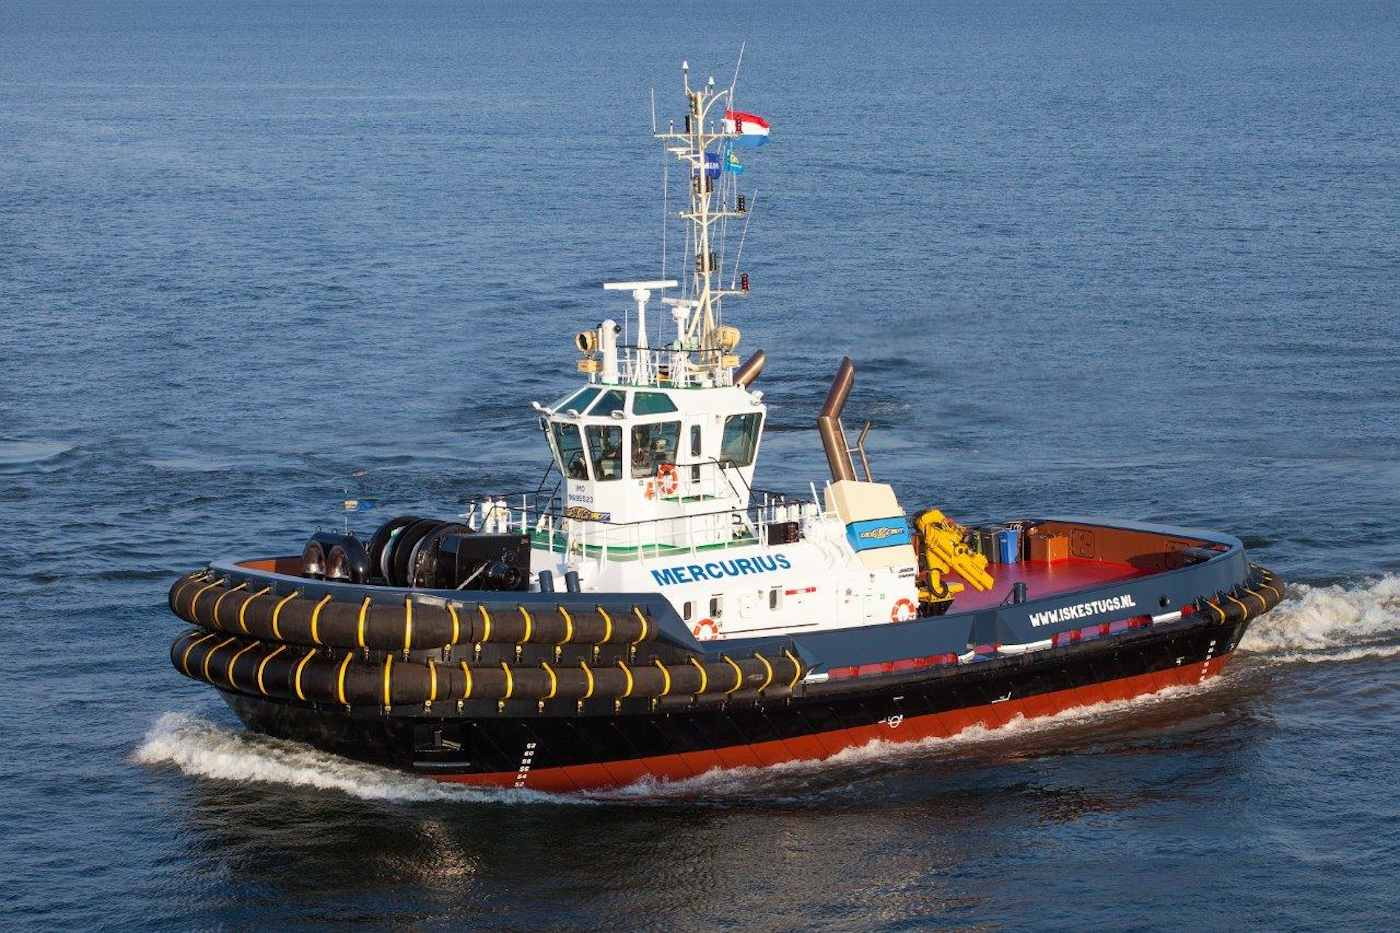 Iskes Towing & Salvage expands with third Damen ASD Tug 3212